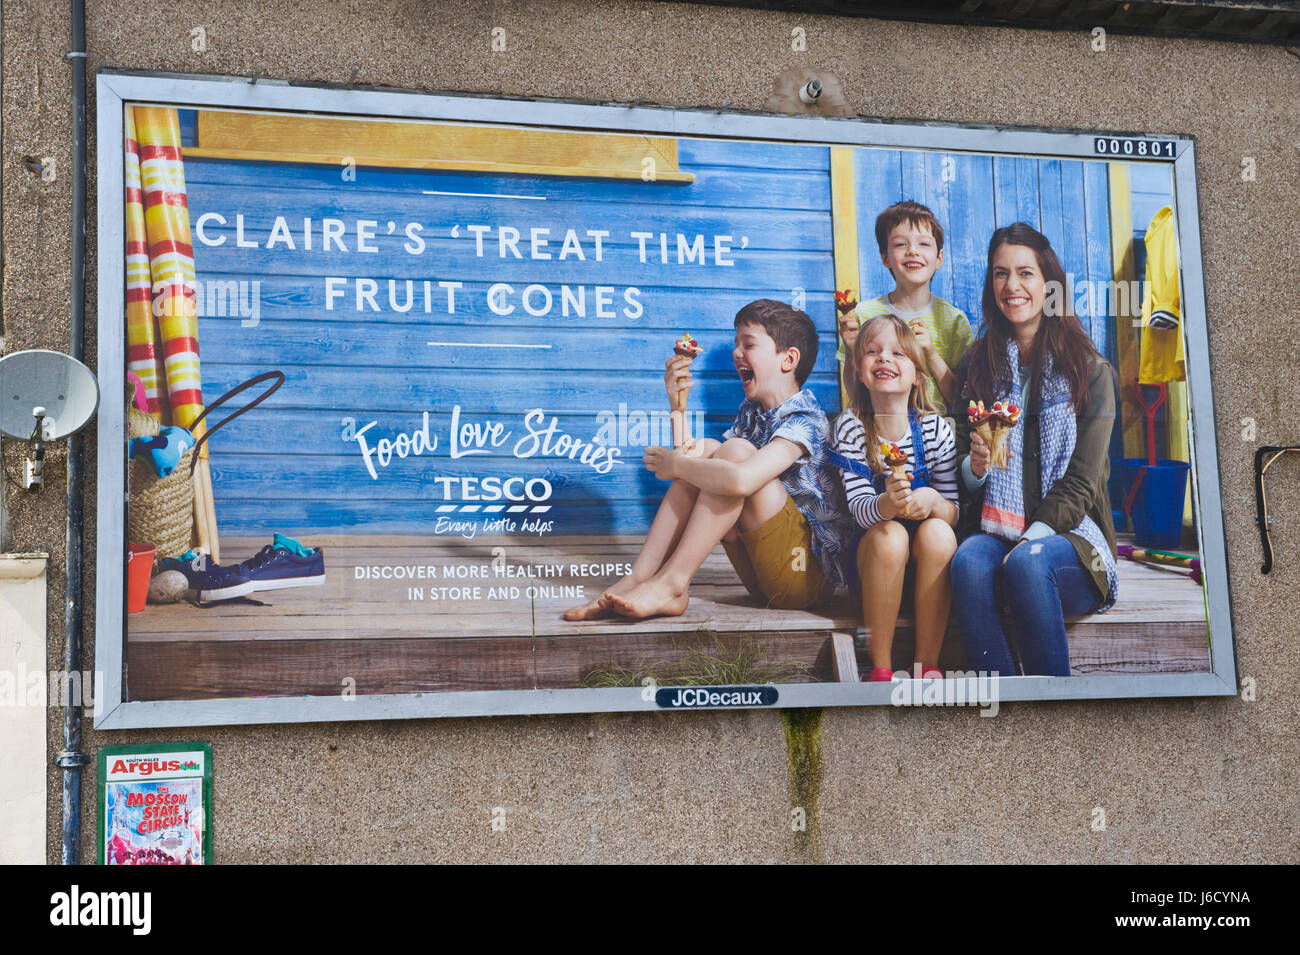 Tesco 48 sheet advertising billboard on JCDecaux site in Newport, South Wales, UK - Stock Image